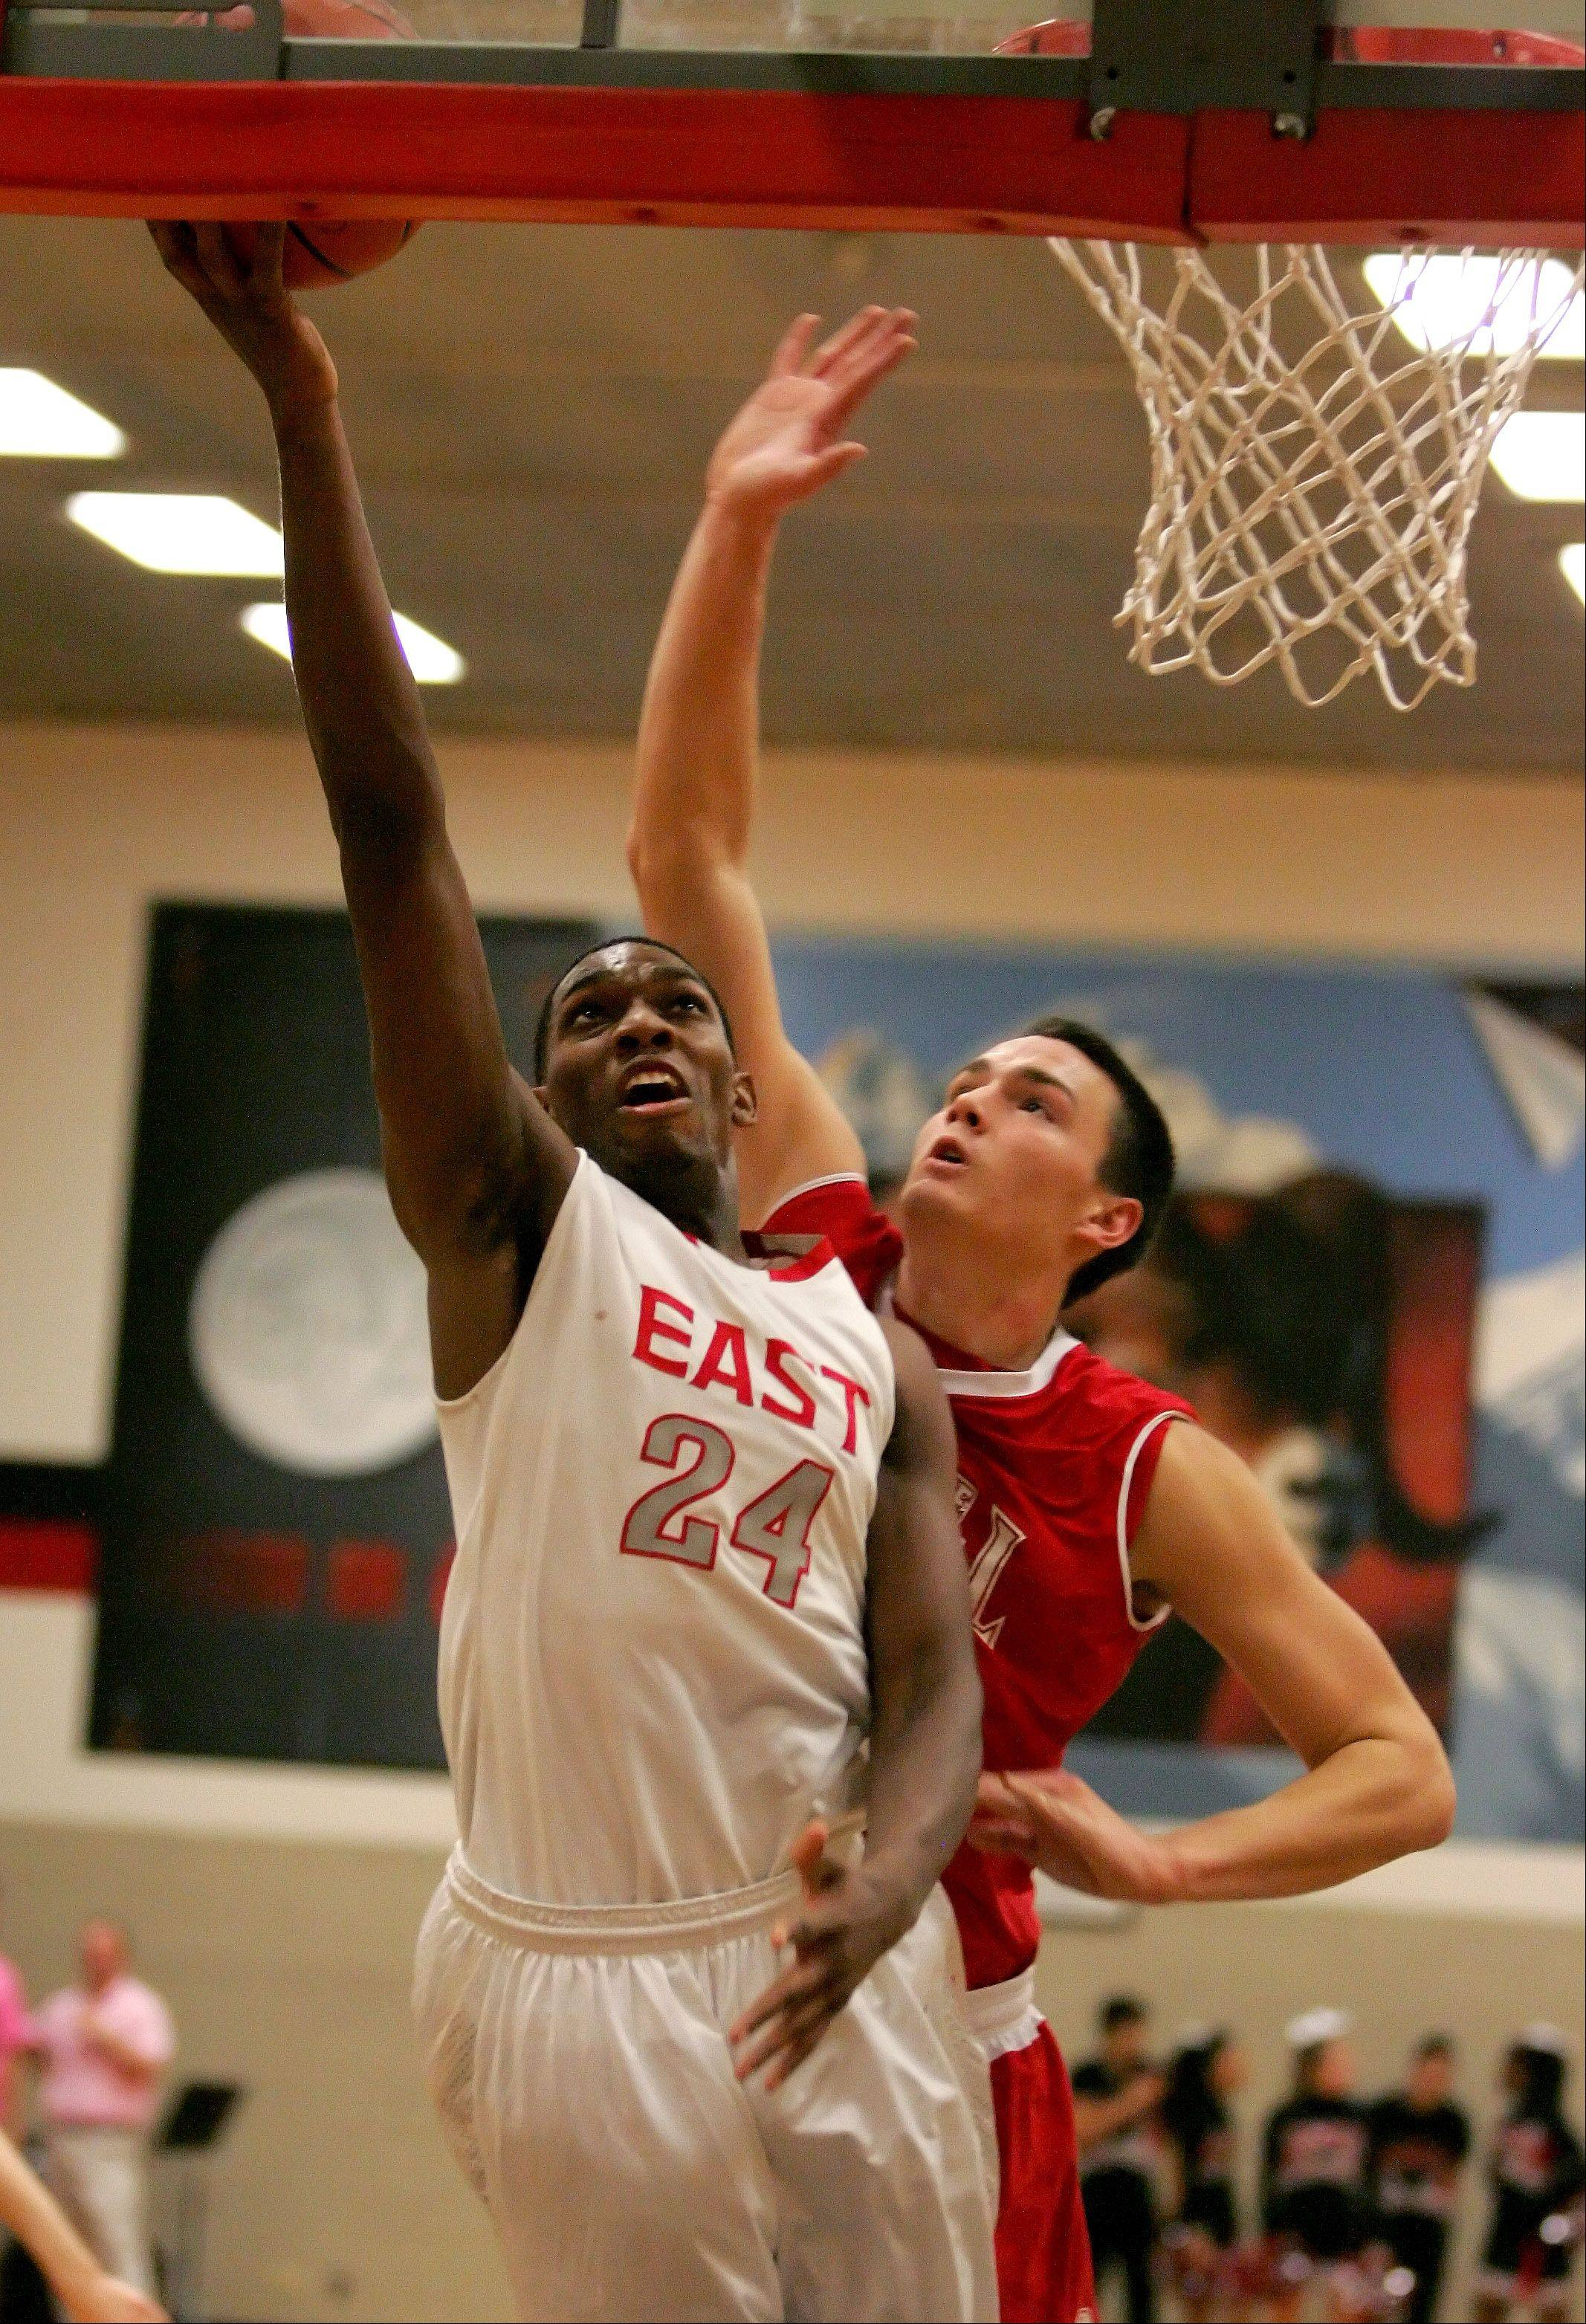 Marvin Grant-Clark, left, of Glenbard East goes up for two points as Nick Czarnowski of Naperville Central defends in boys basketball action Friday in Lombard.